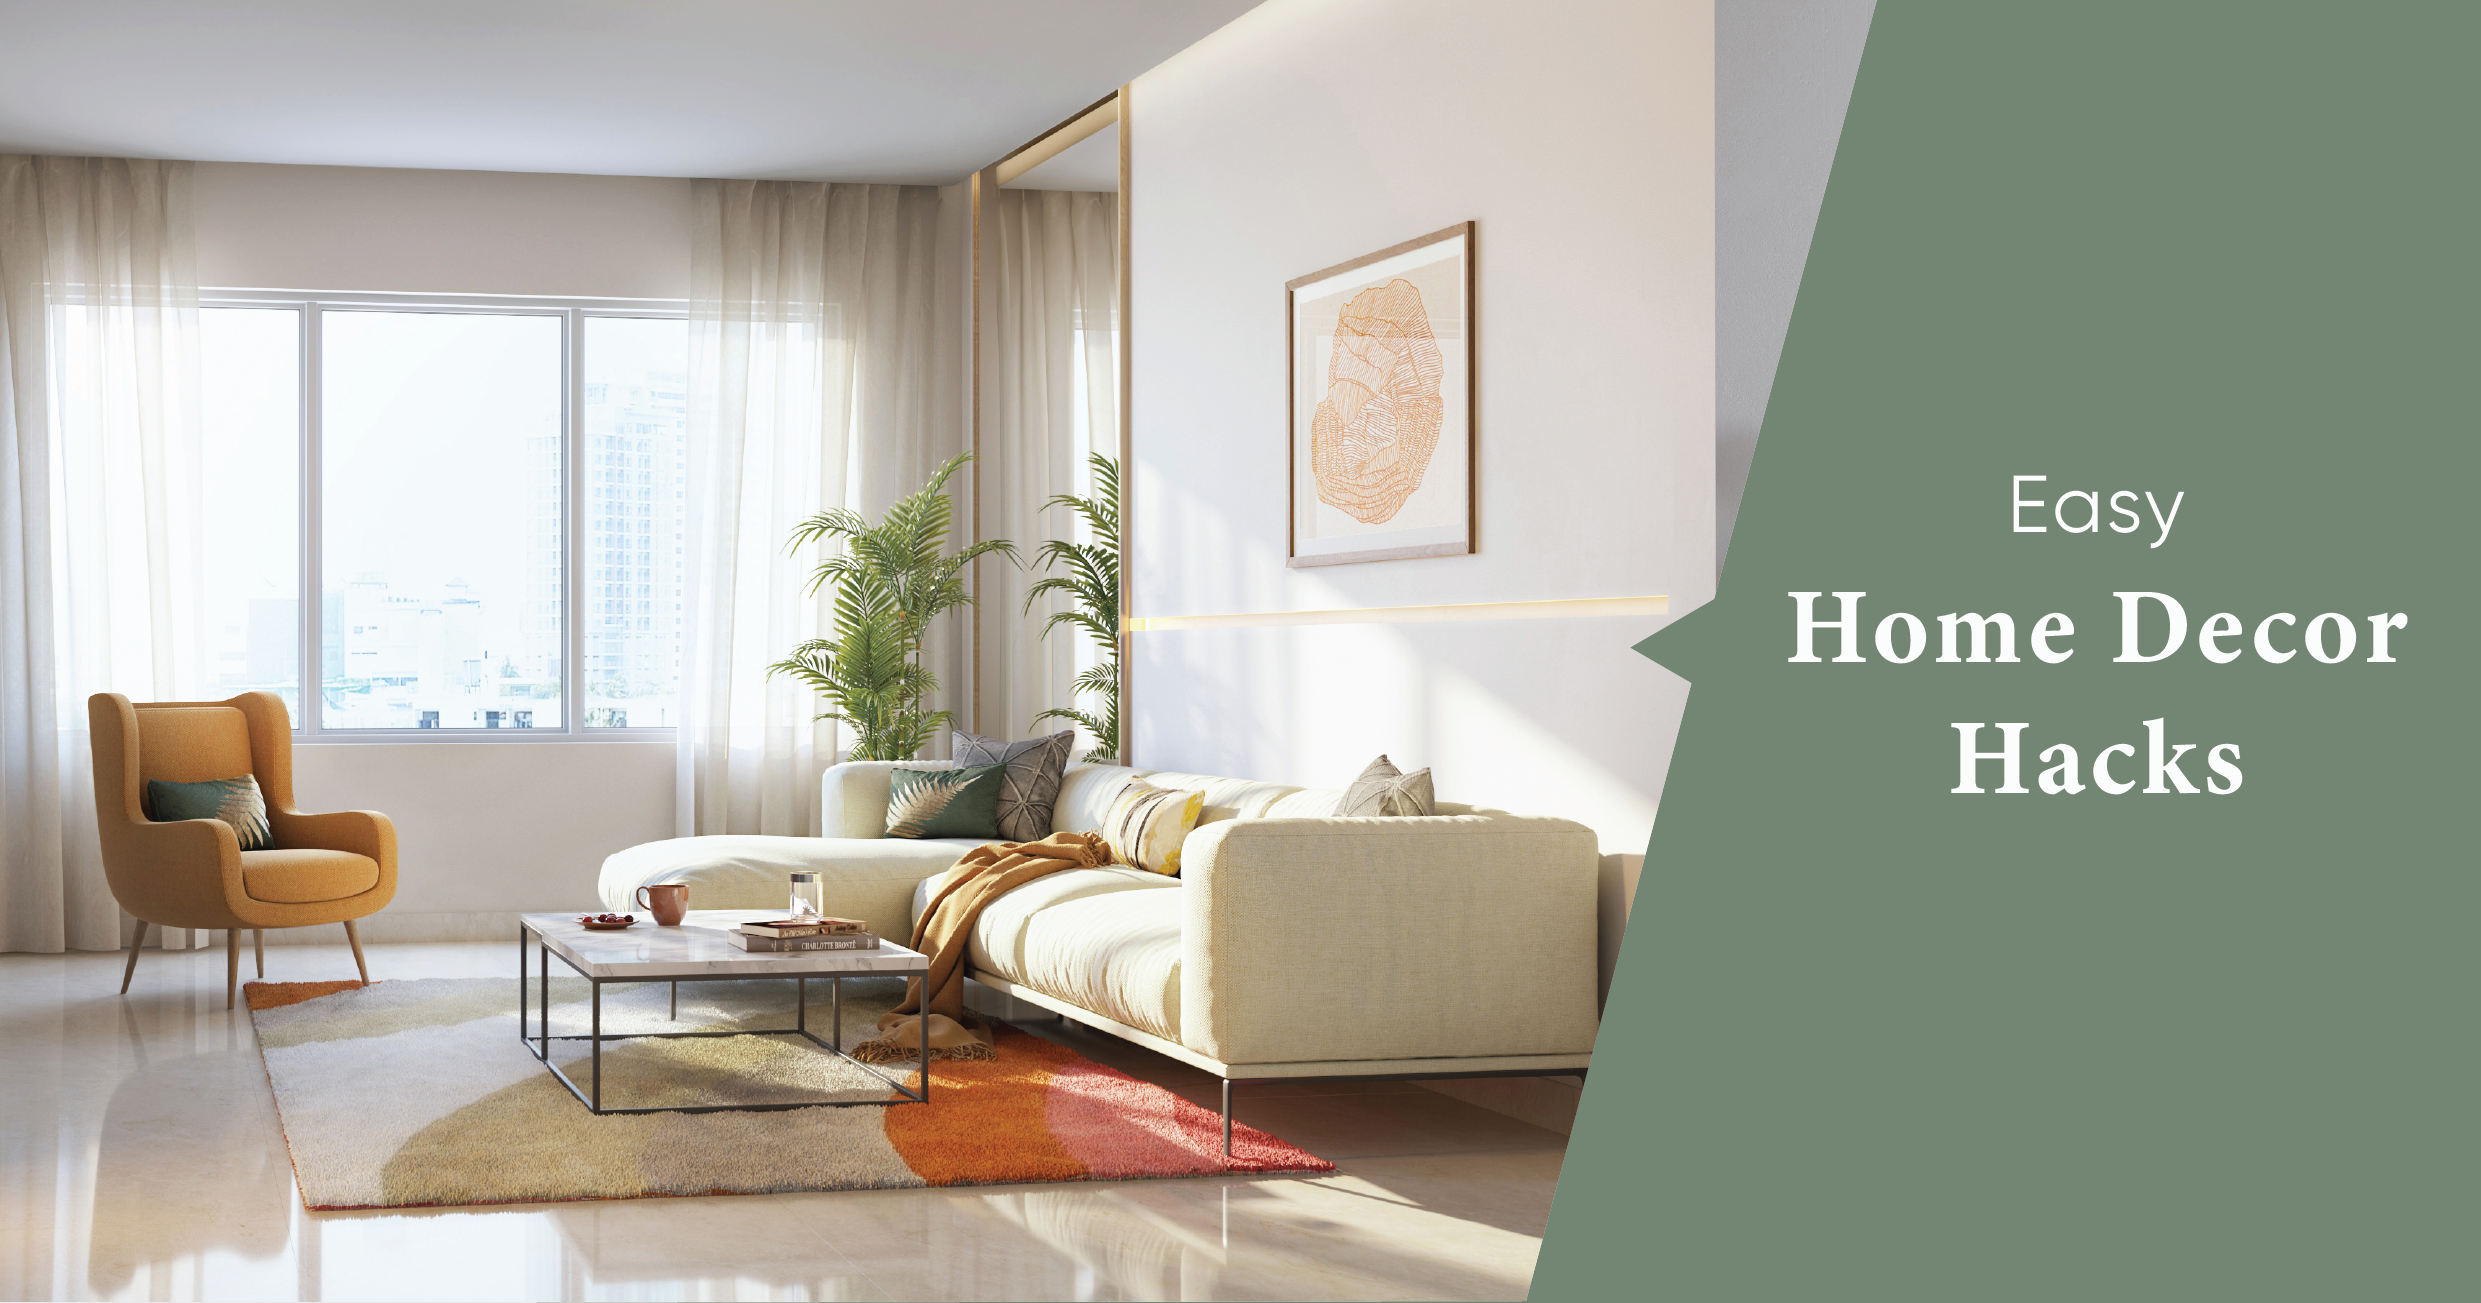 9 Simple Ways to Give Your Home a Professional Touch